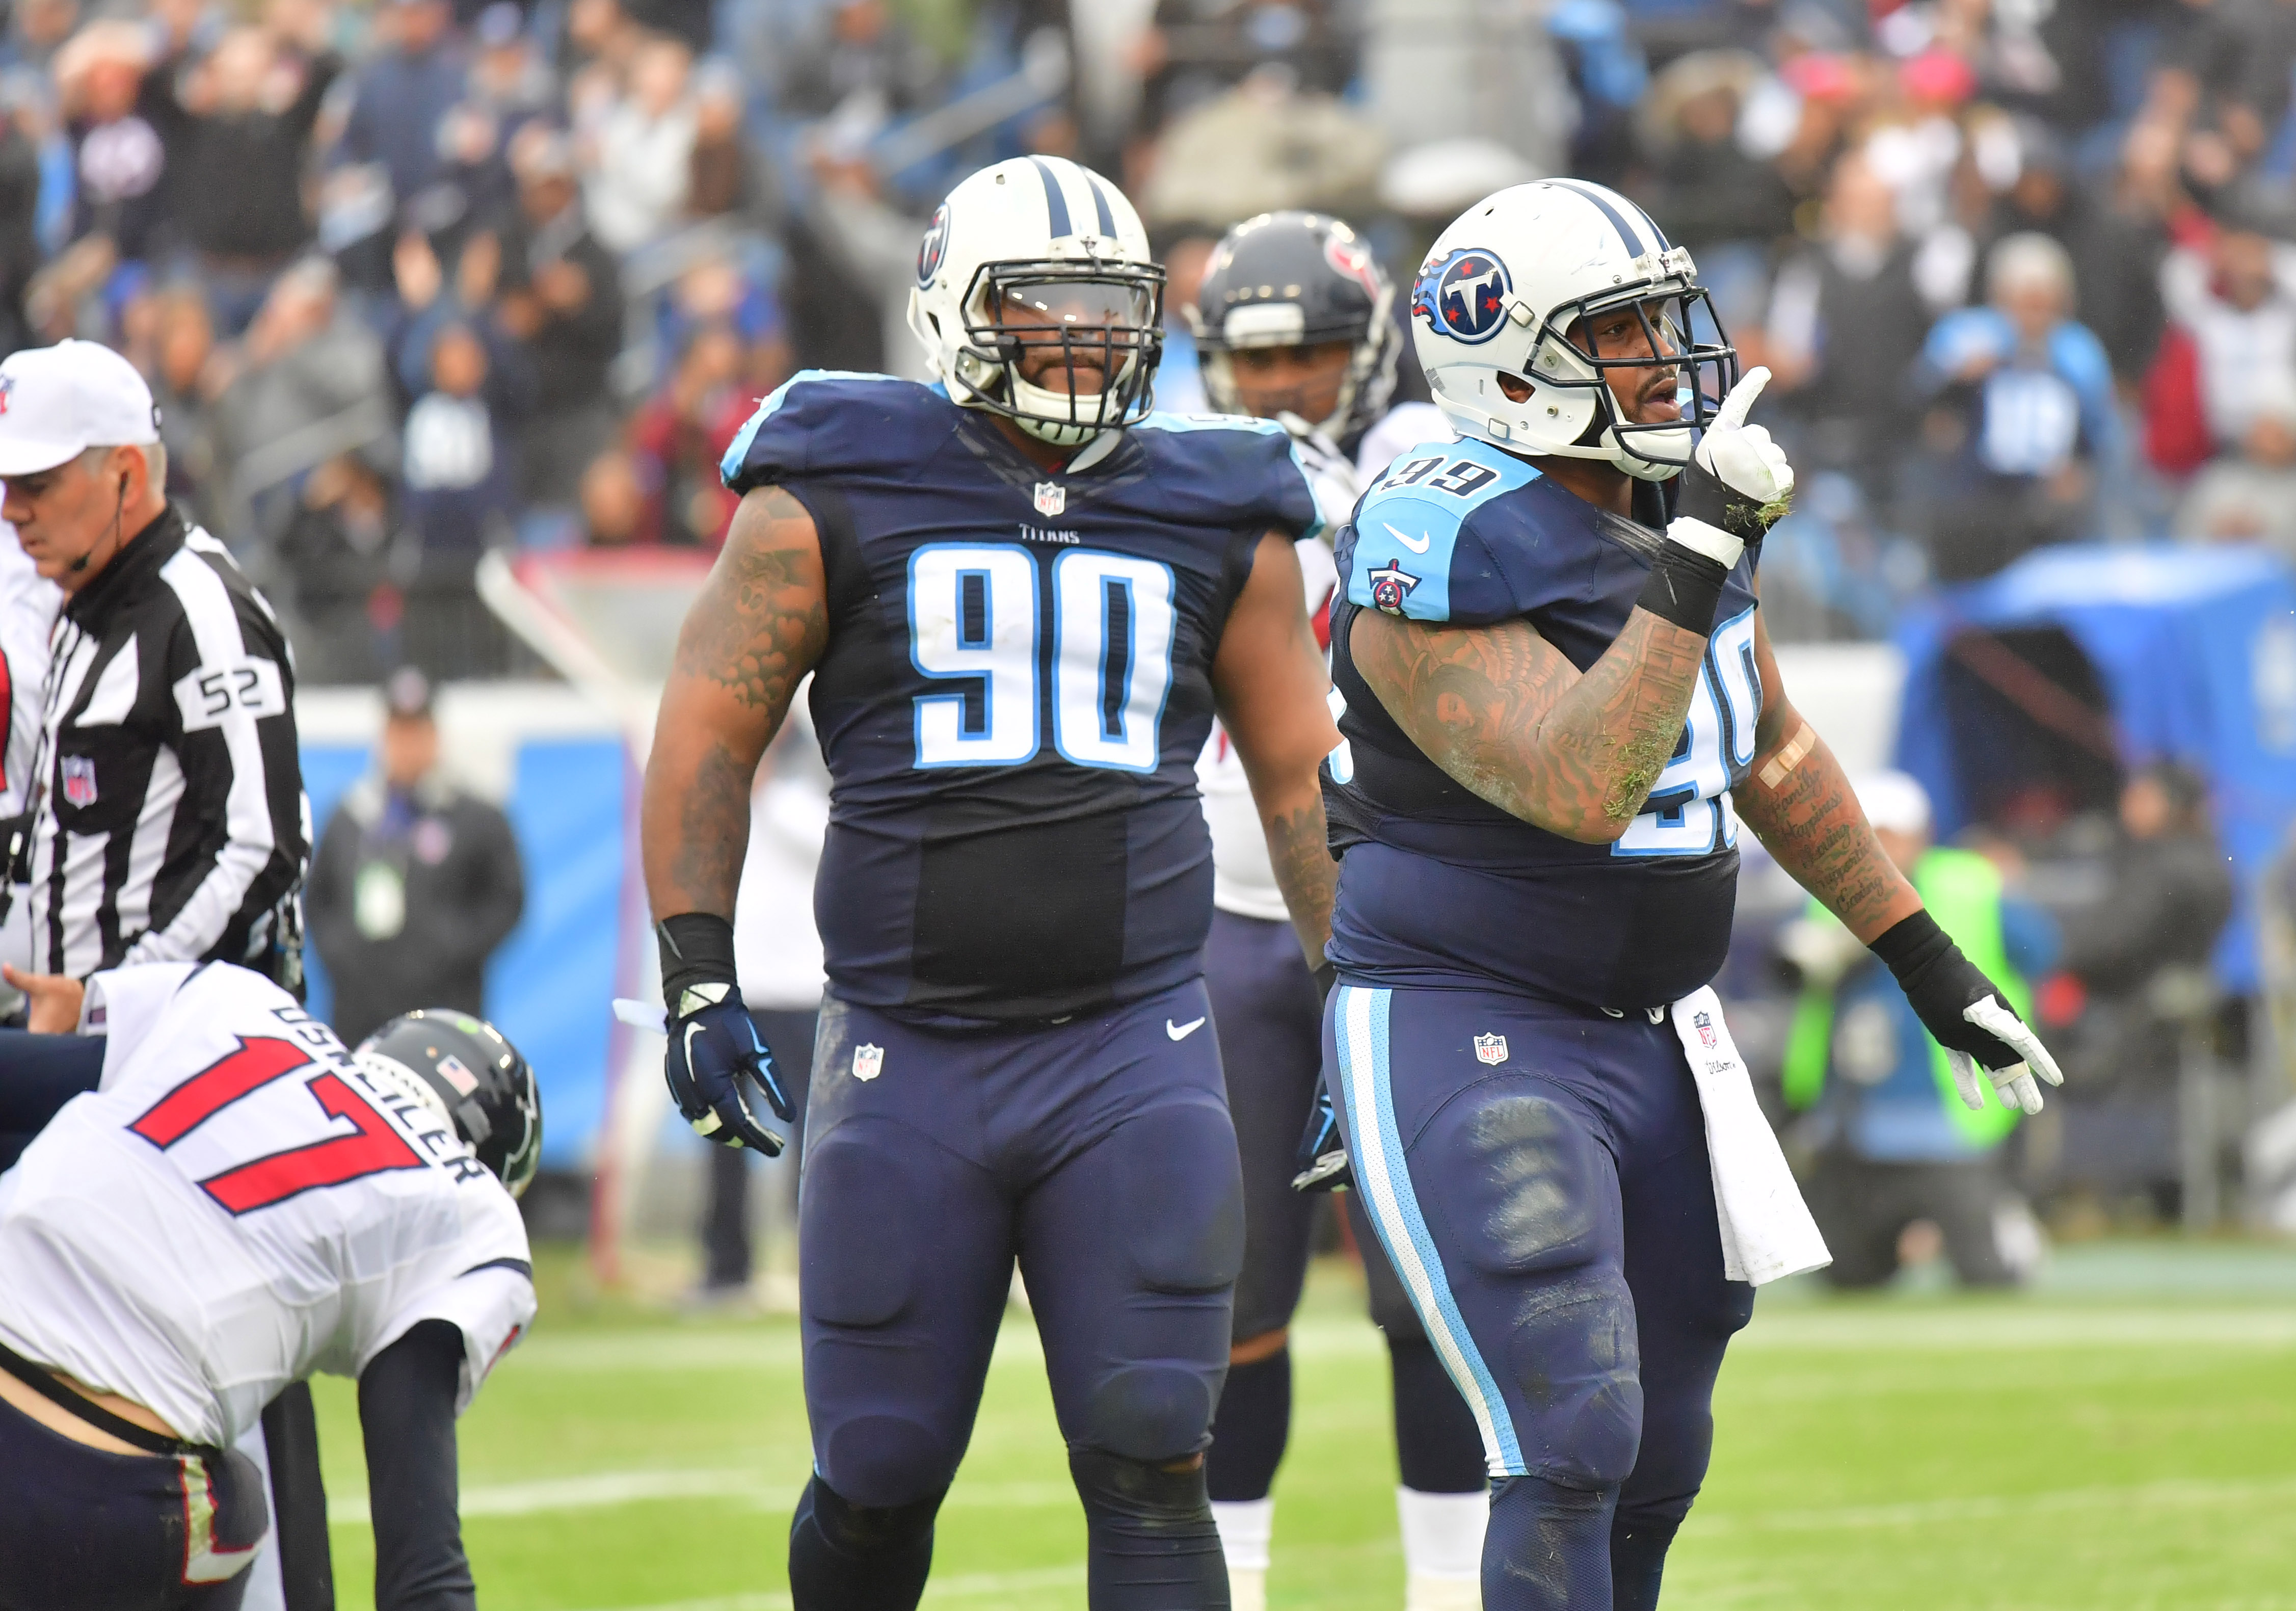 9781562-nfl-houston-texans-at-tennessee-titans